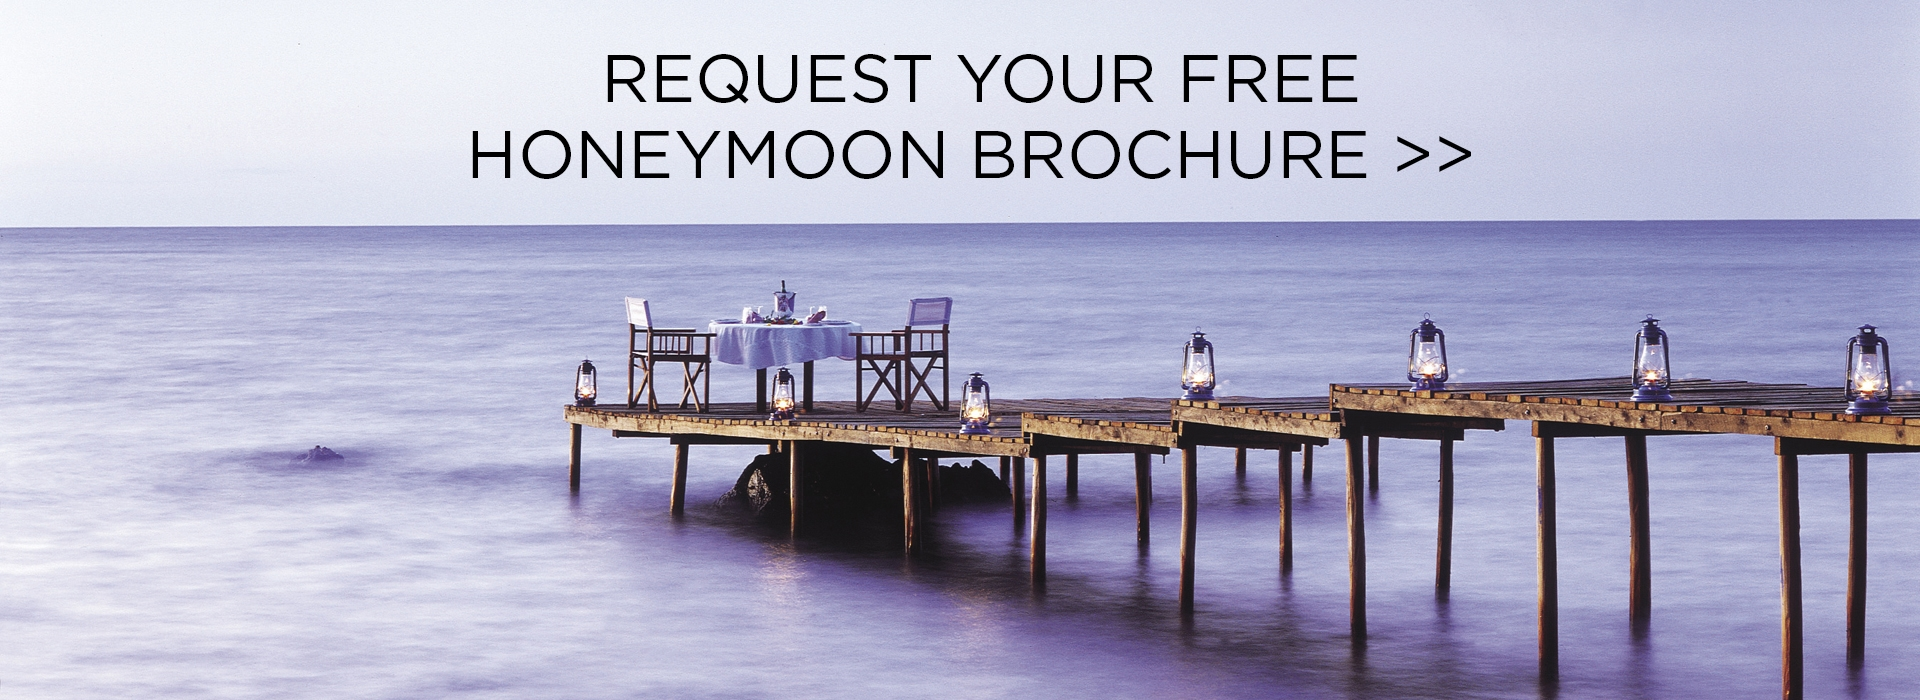 Request a Honeymoon Brochure